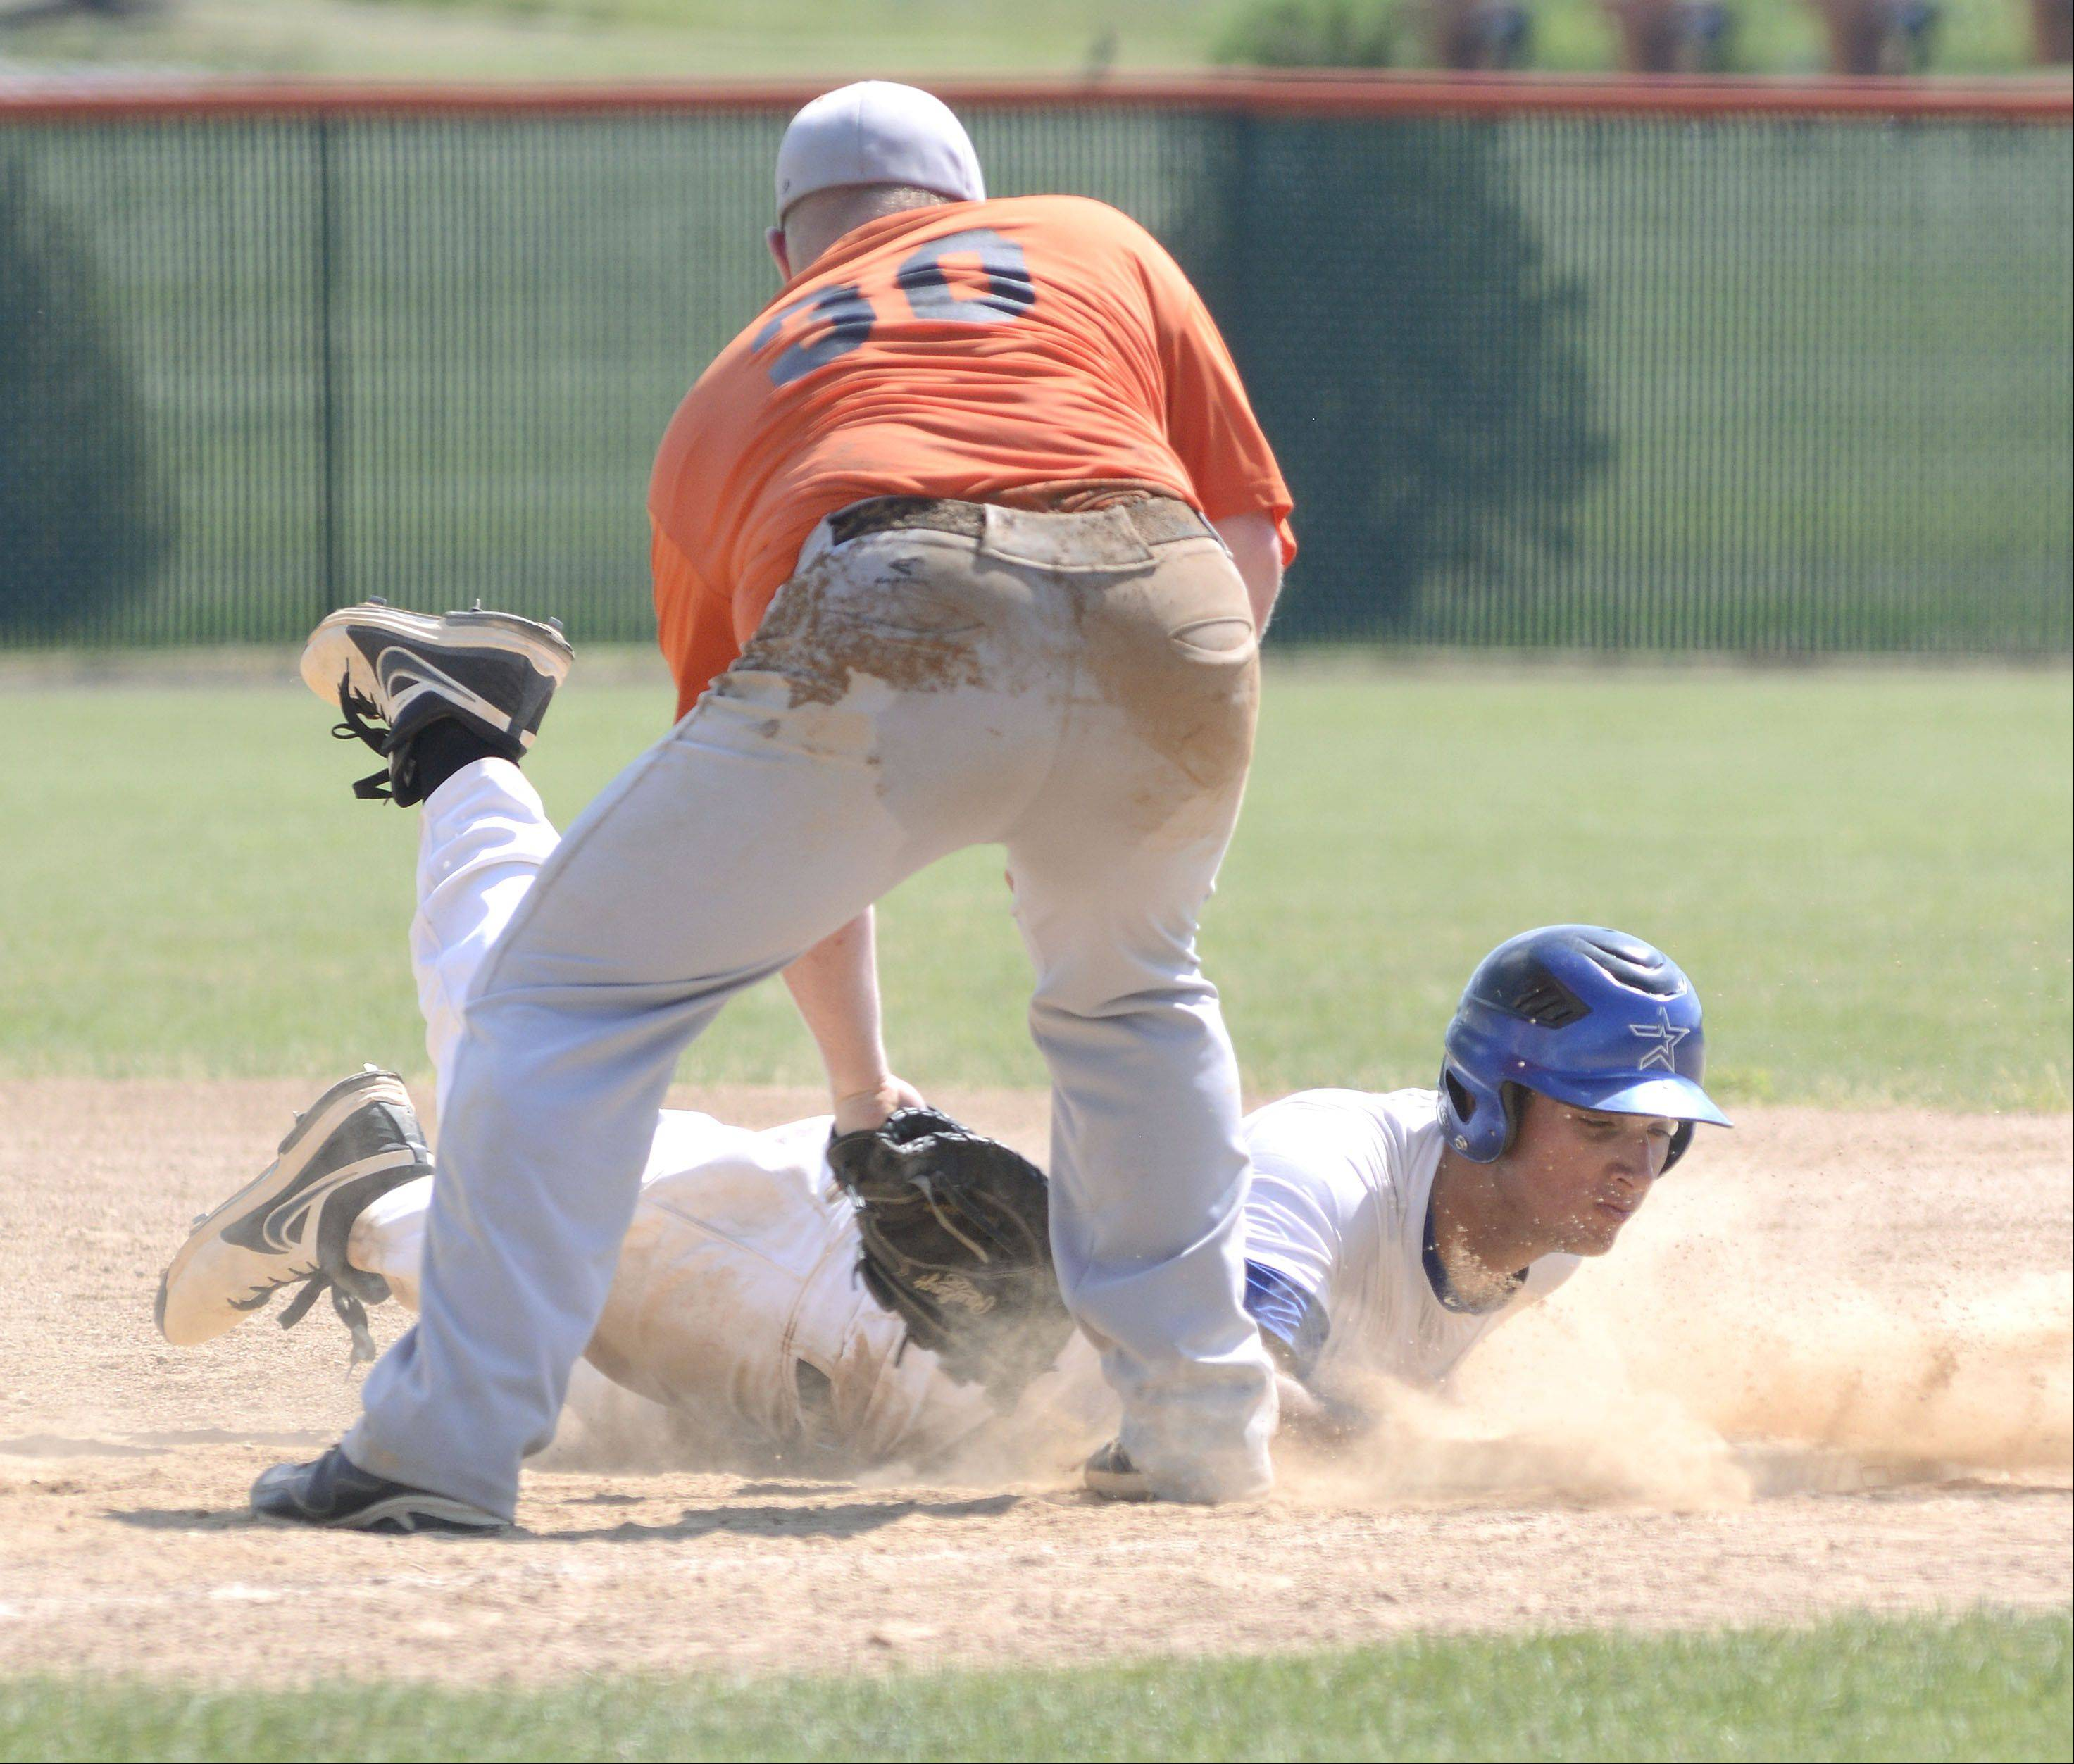 St. Charles North's Joe Kuczek is tagged by St. Charles East's Ben Smith on first base in the fourth inning of the St. Charles East summer tournament semifinals on Wednesday, July 17.